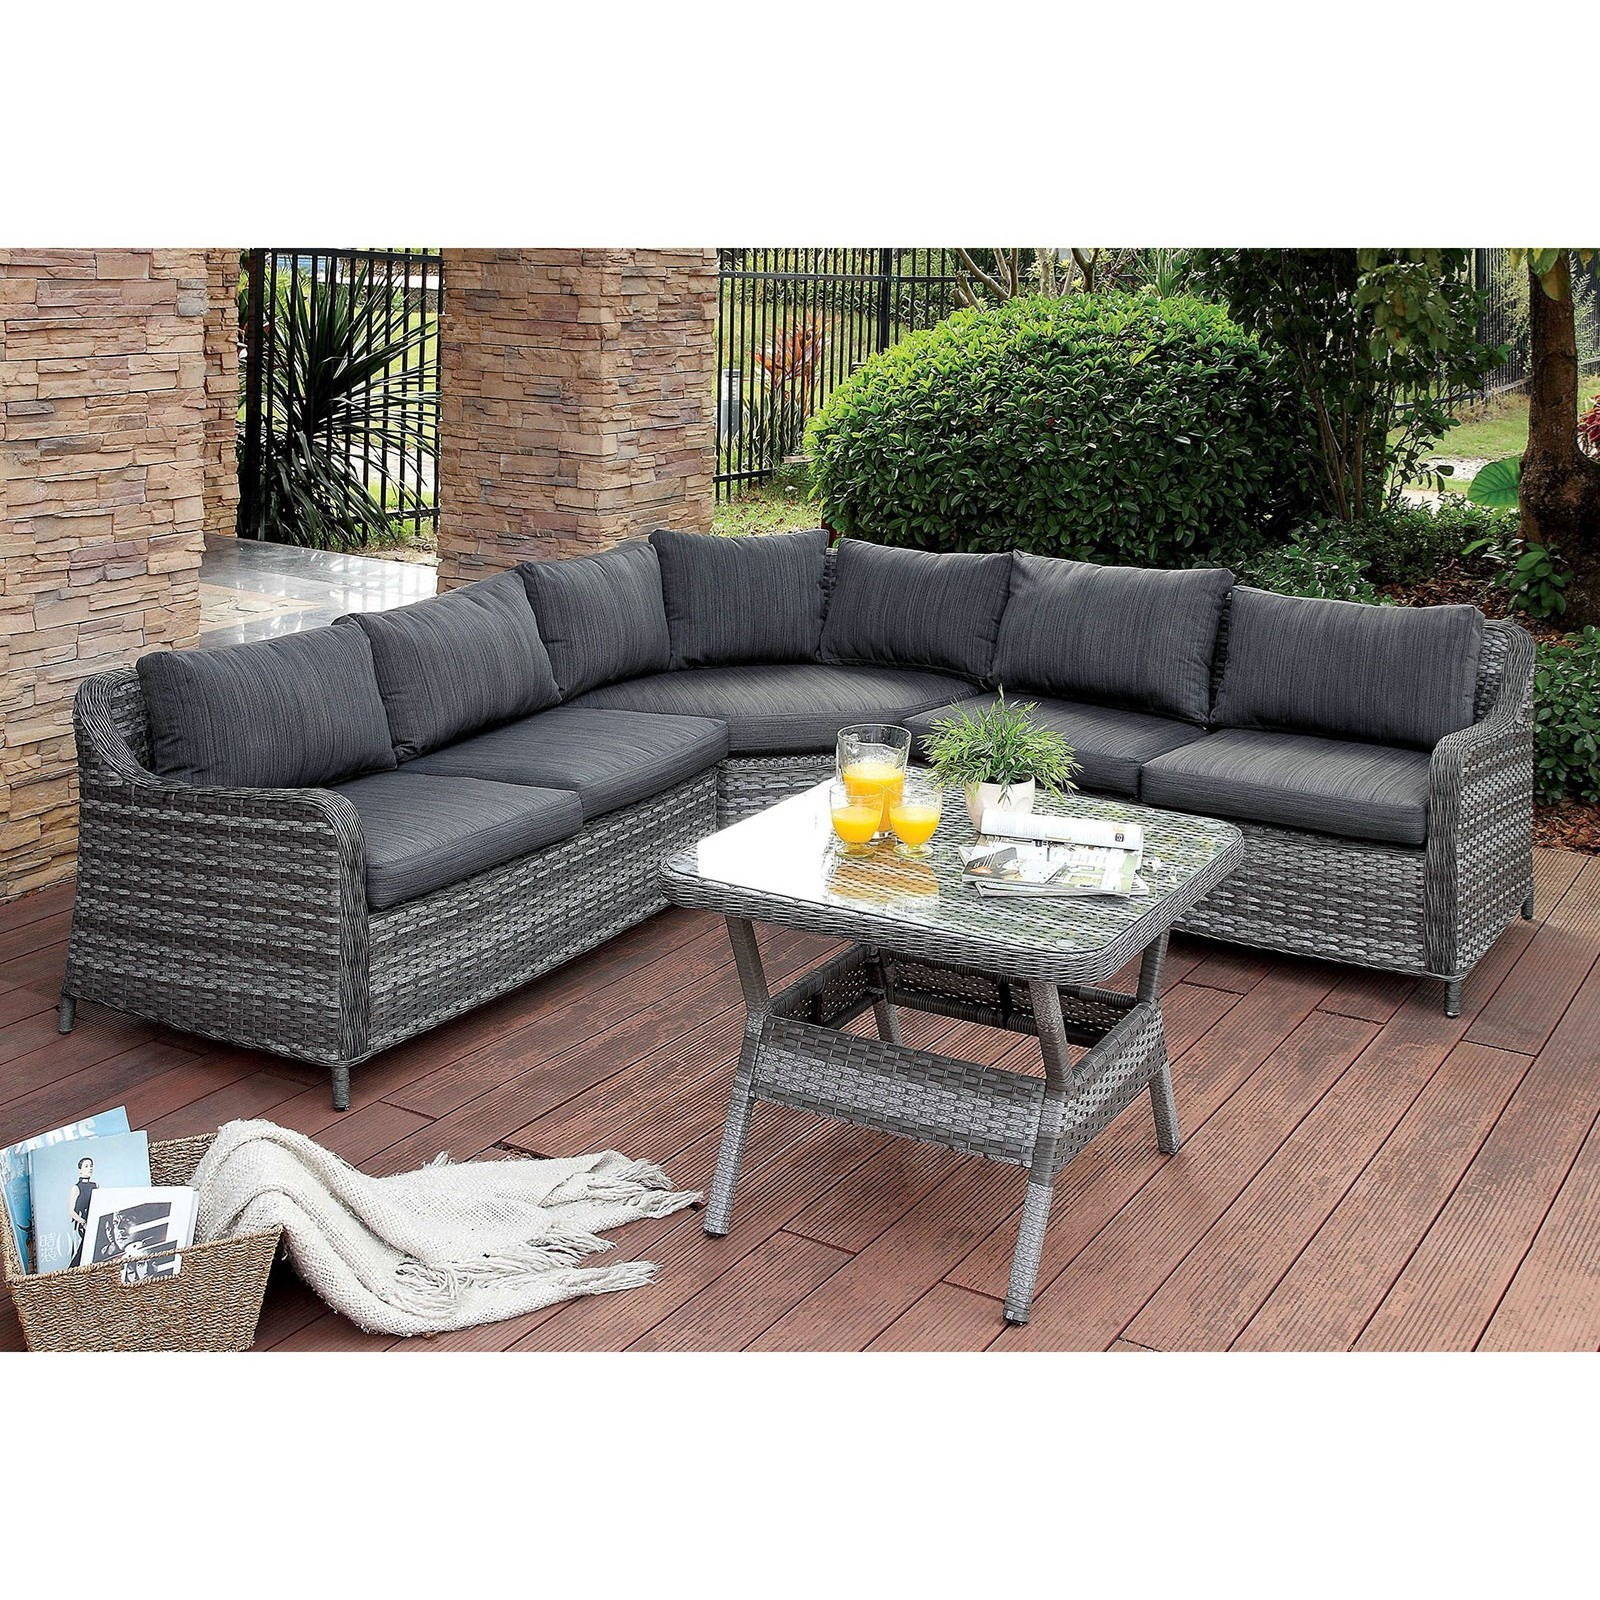 Selina Patio Sectional w/ Table at Household Furniture